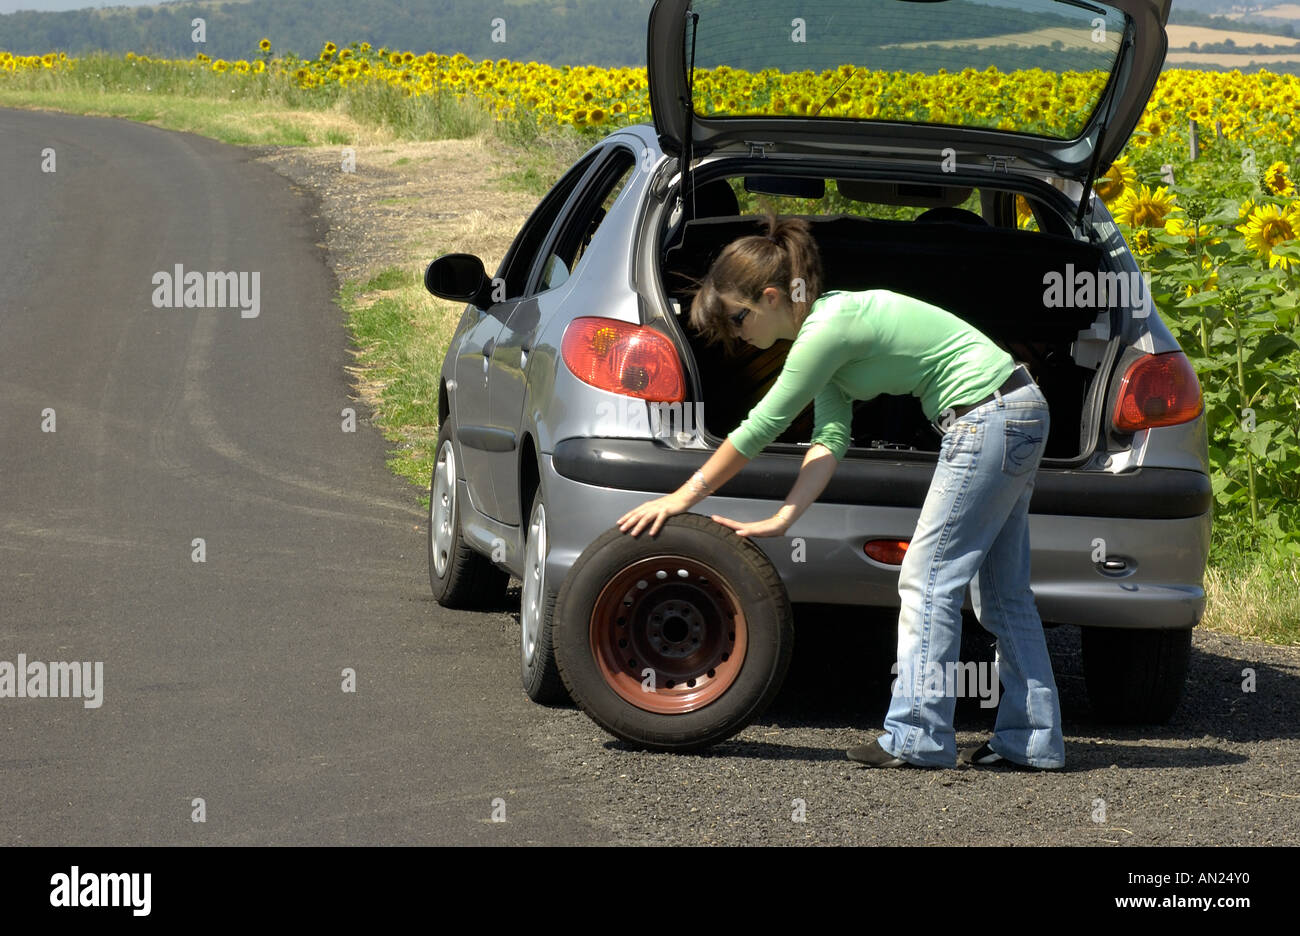 Woman changing her flat tyre - Stock Image